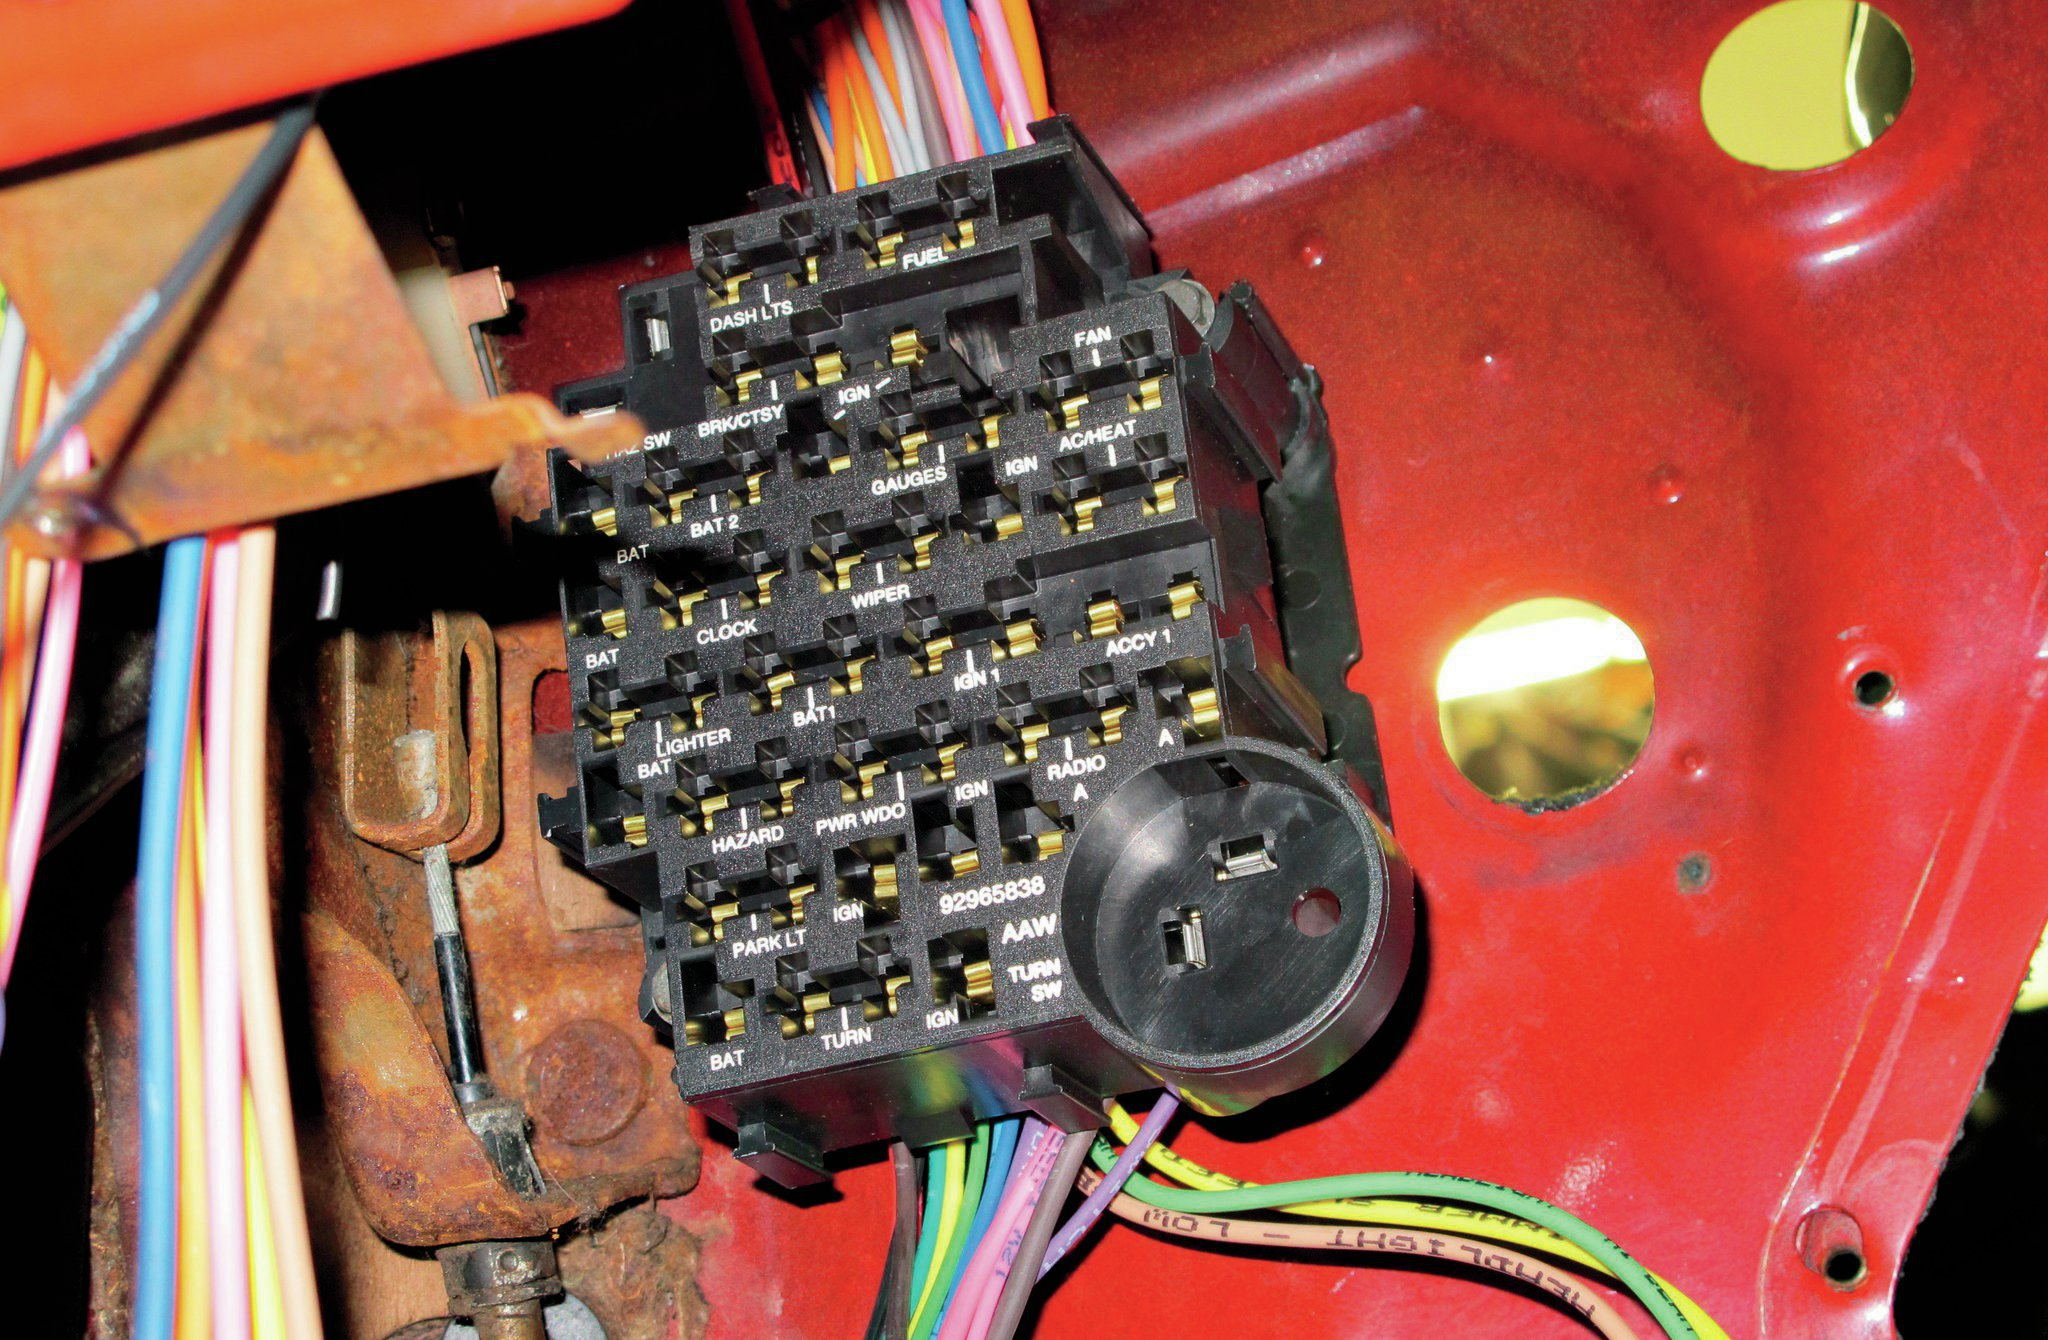 72 chevelle fuse box wiring diagrams 1968 chevelle wiring diagram 1970 chevelle fuse block diagram